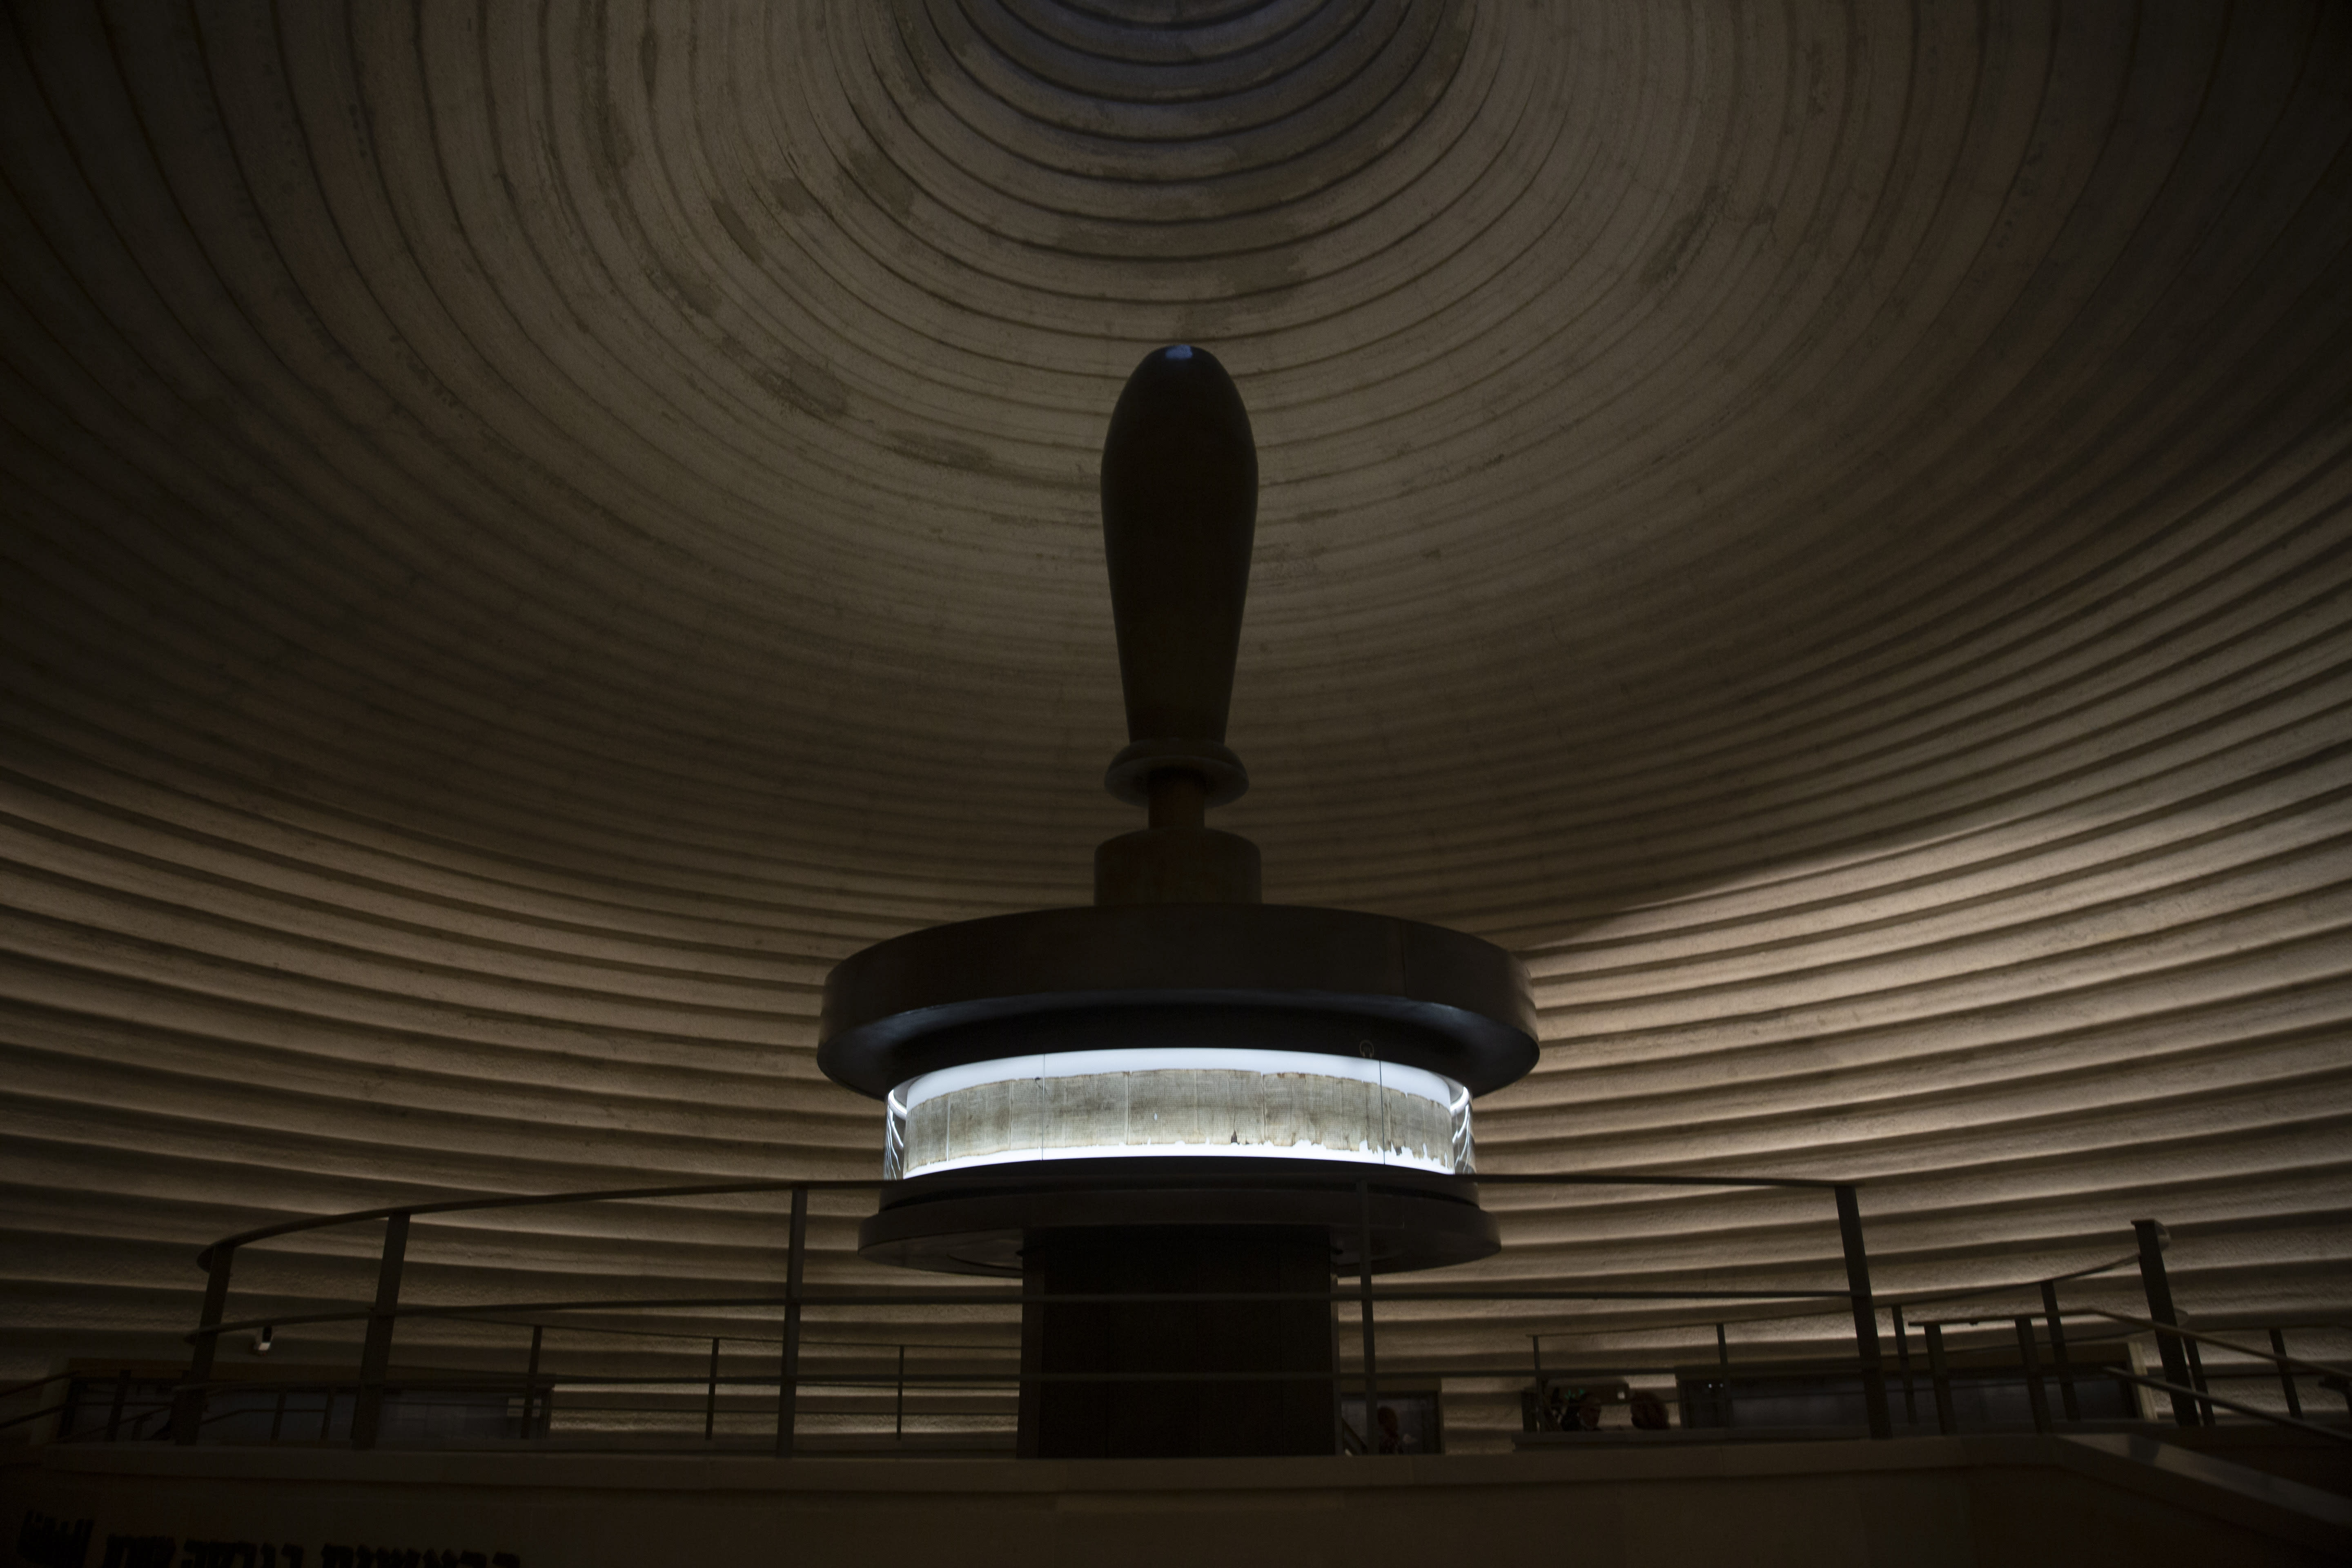 The Dead Sea Scrolls at the Shrine of the Book are on display in the Israel Museum, during final preparations during final preparations to reopen following five months of closure due to the coronavirus pandemic, in Jerusalem, Tuesday, Aug. 11, 2020. The Israel Museum, the country's largest cultural institution, is returning the priceless Dead Sea scrolls and other treasured artworks to its galleries ahead of this week's reopening to the public. (AP Photo/Maya Alleruzzo)